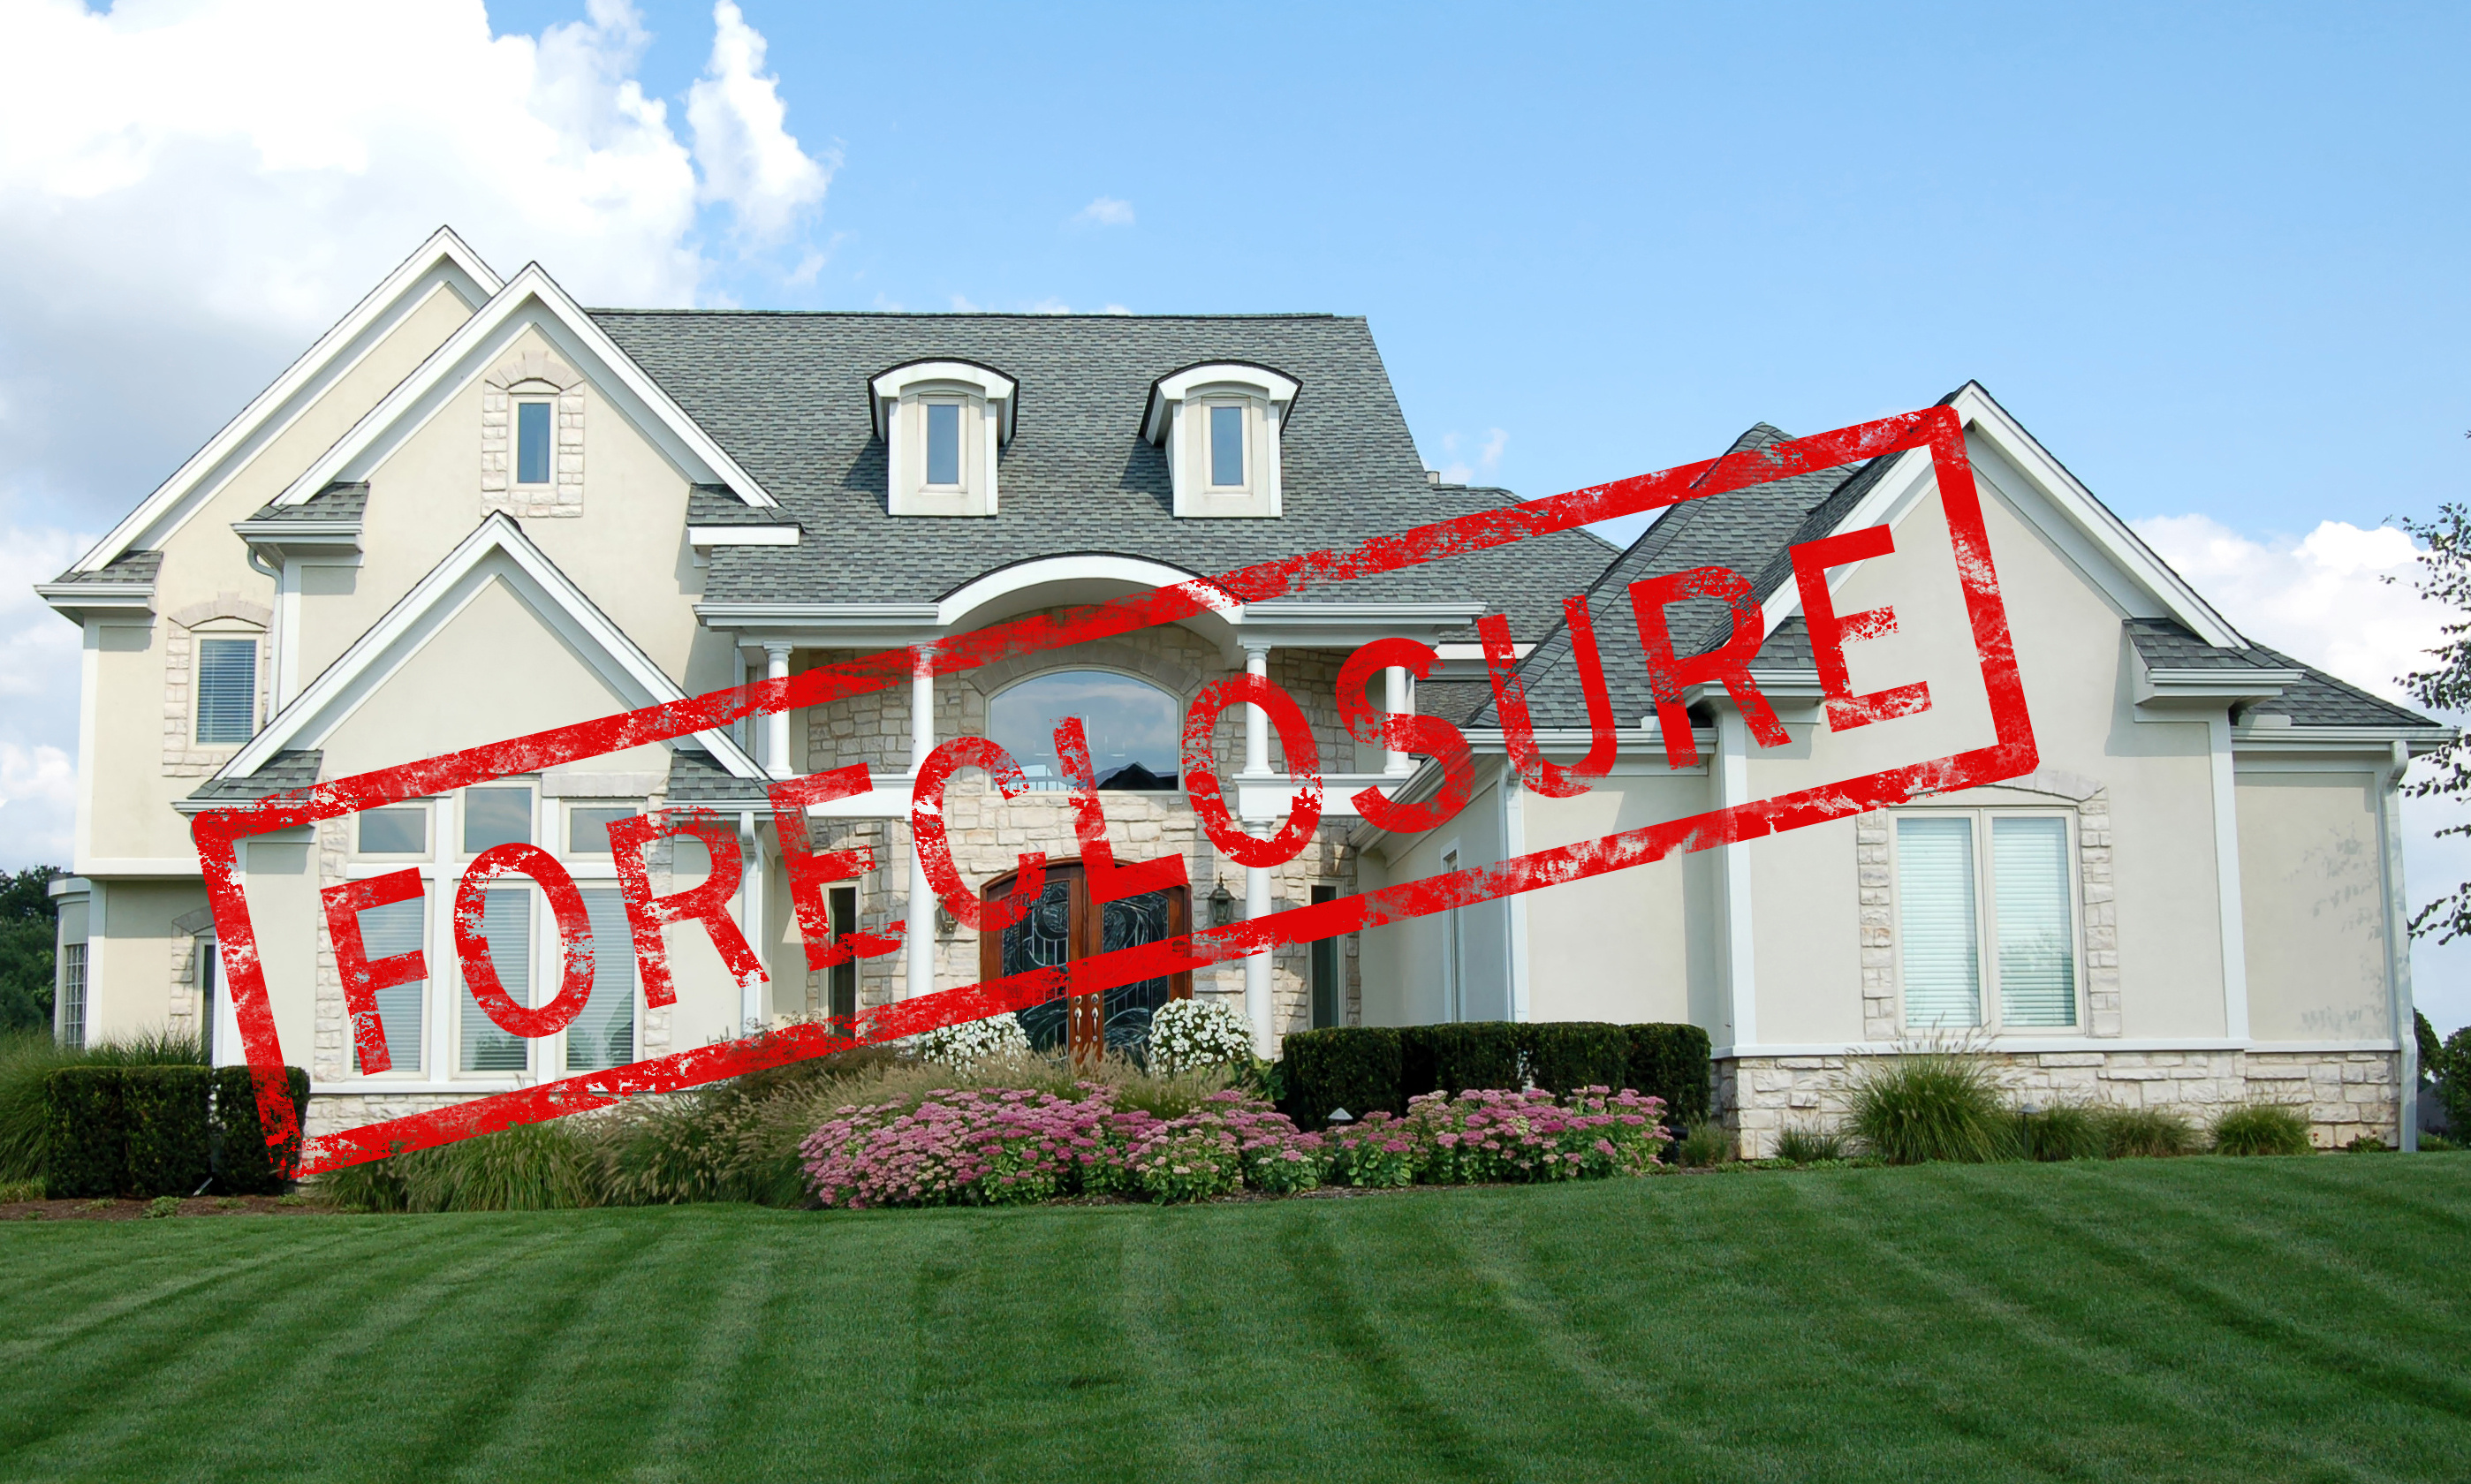 Call The August Group Inc. to order appraisals pertaining to Saint Louis foreclosures